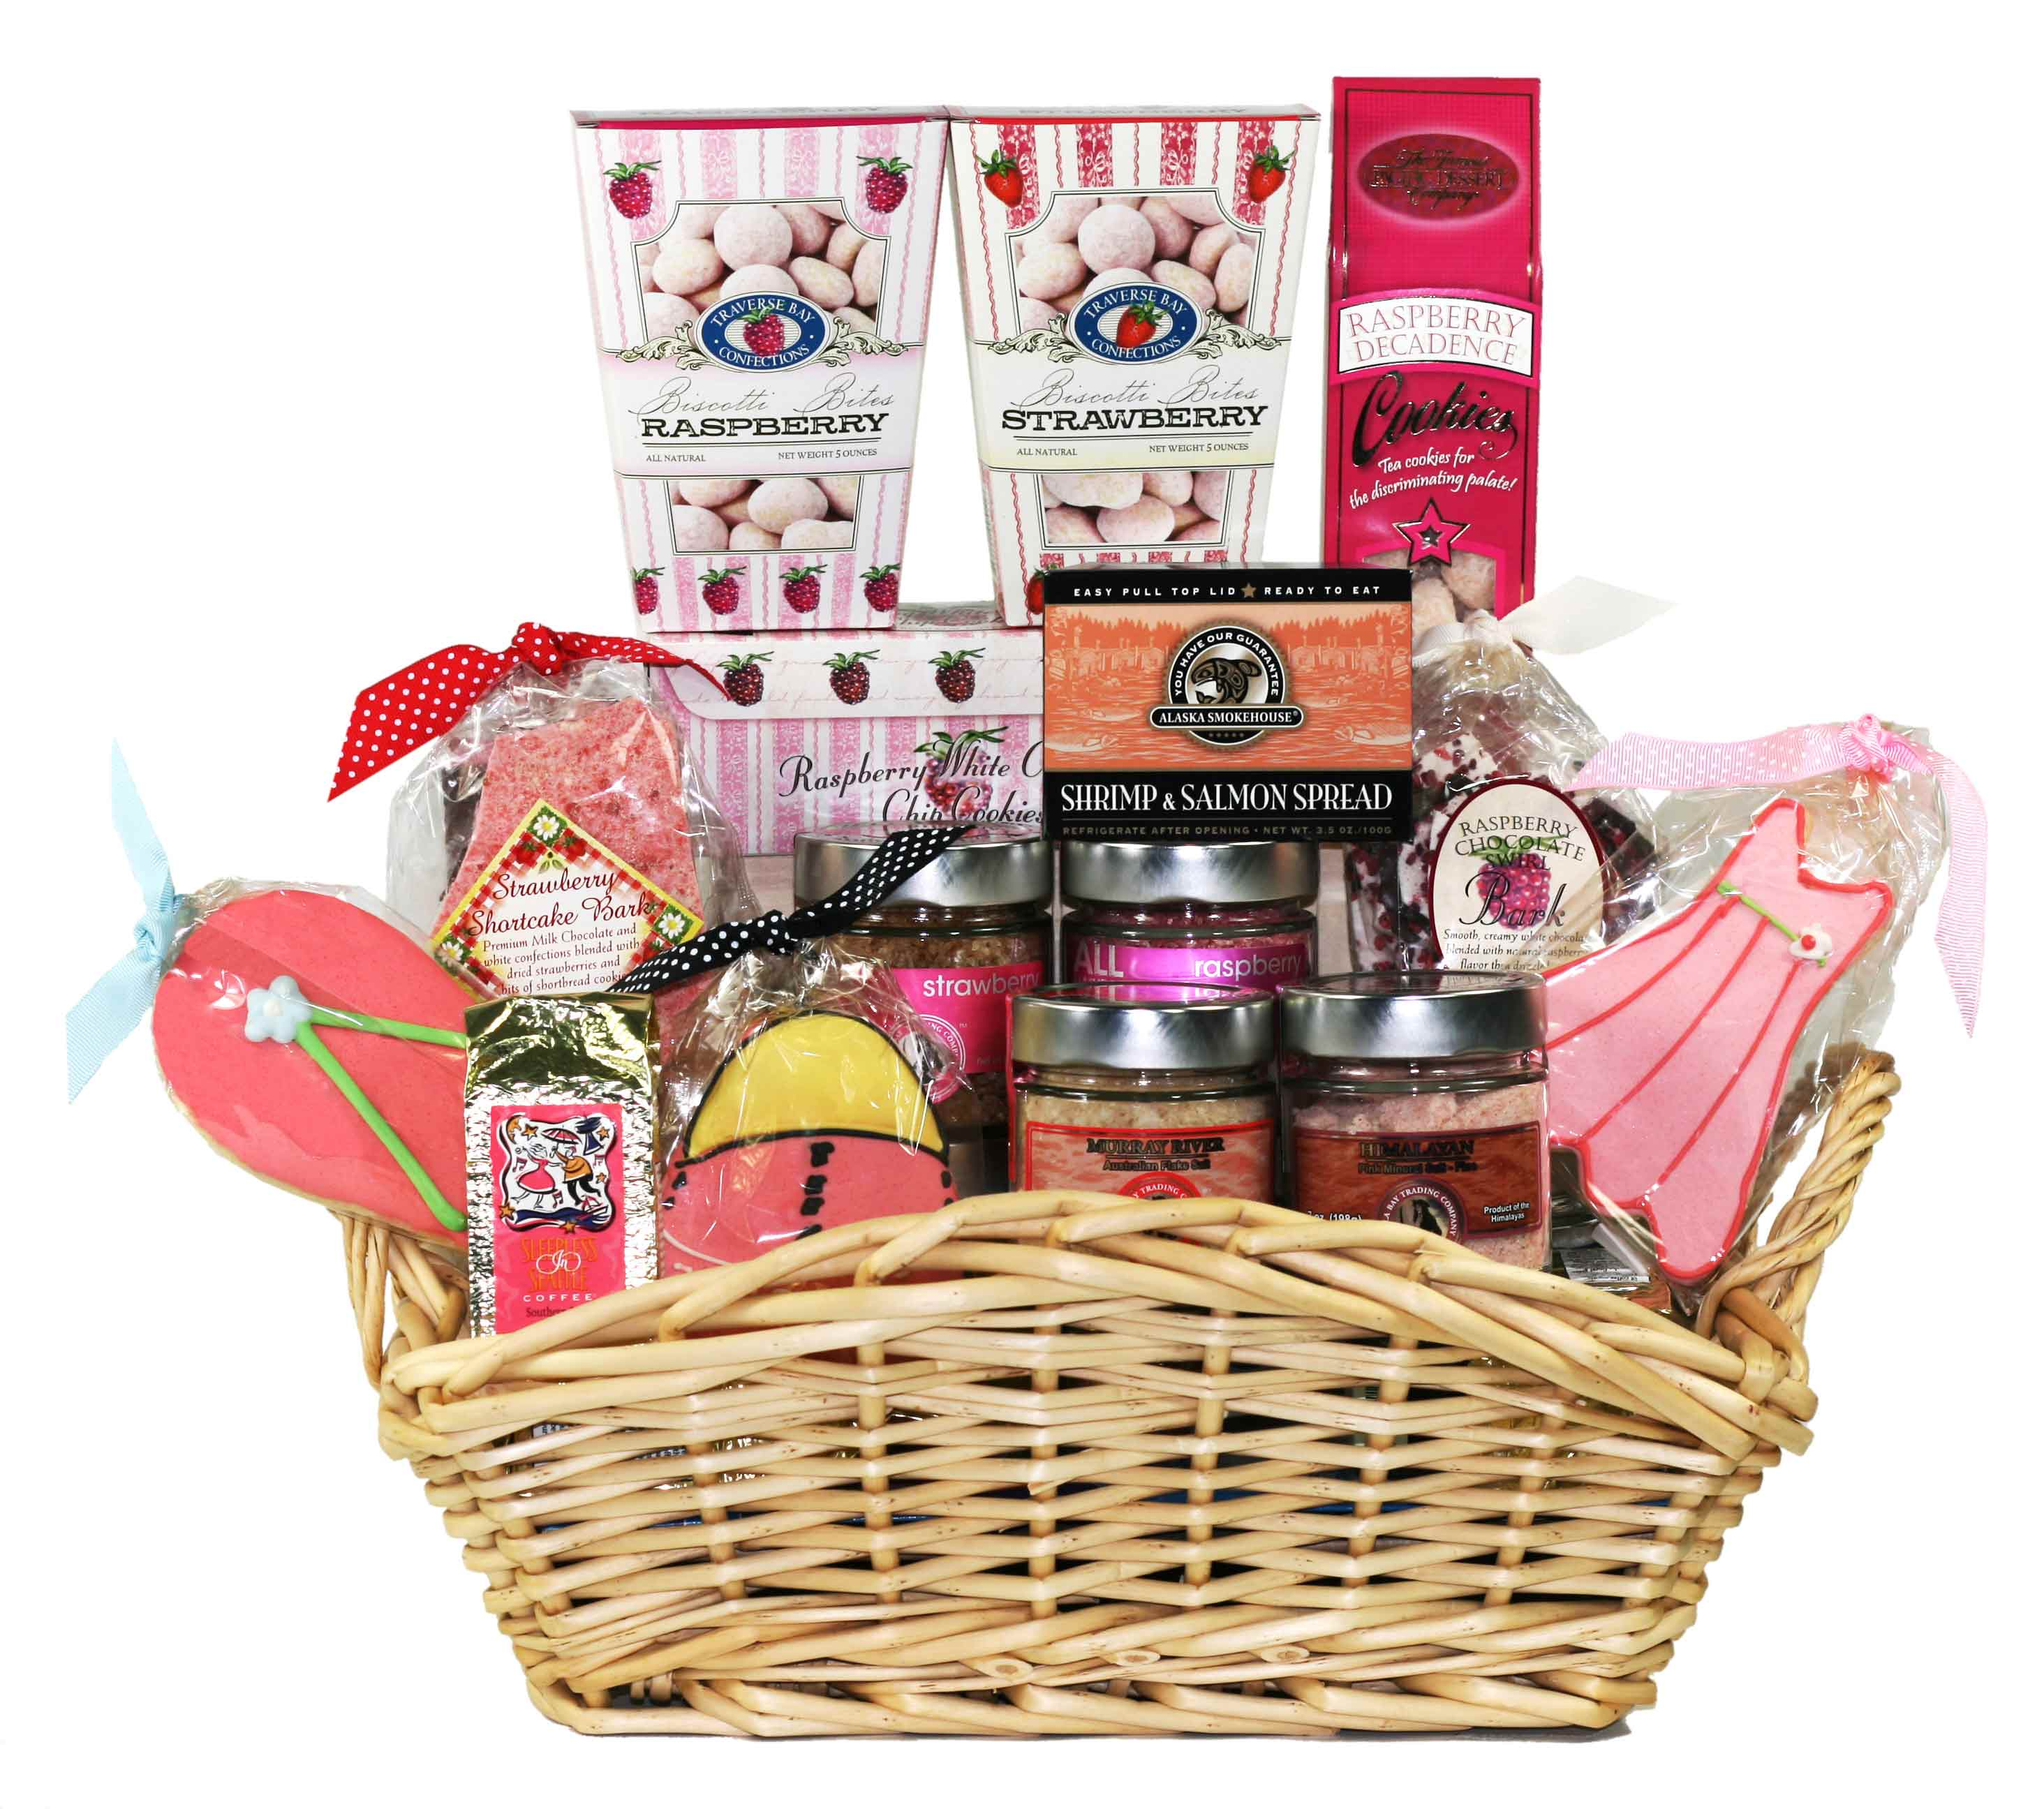 Marketing your gift basket business pink themed ideas for marketing your gift basket business negle Image collections